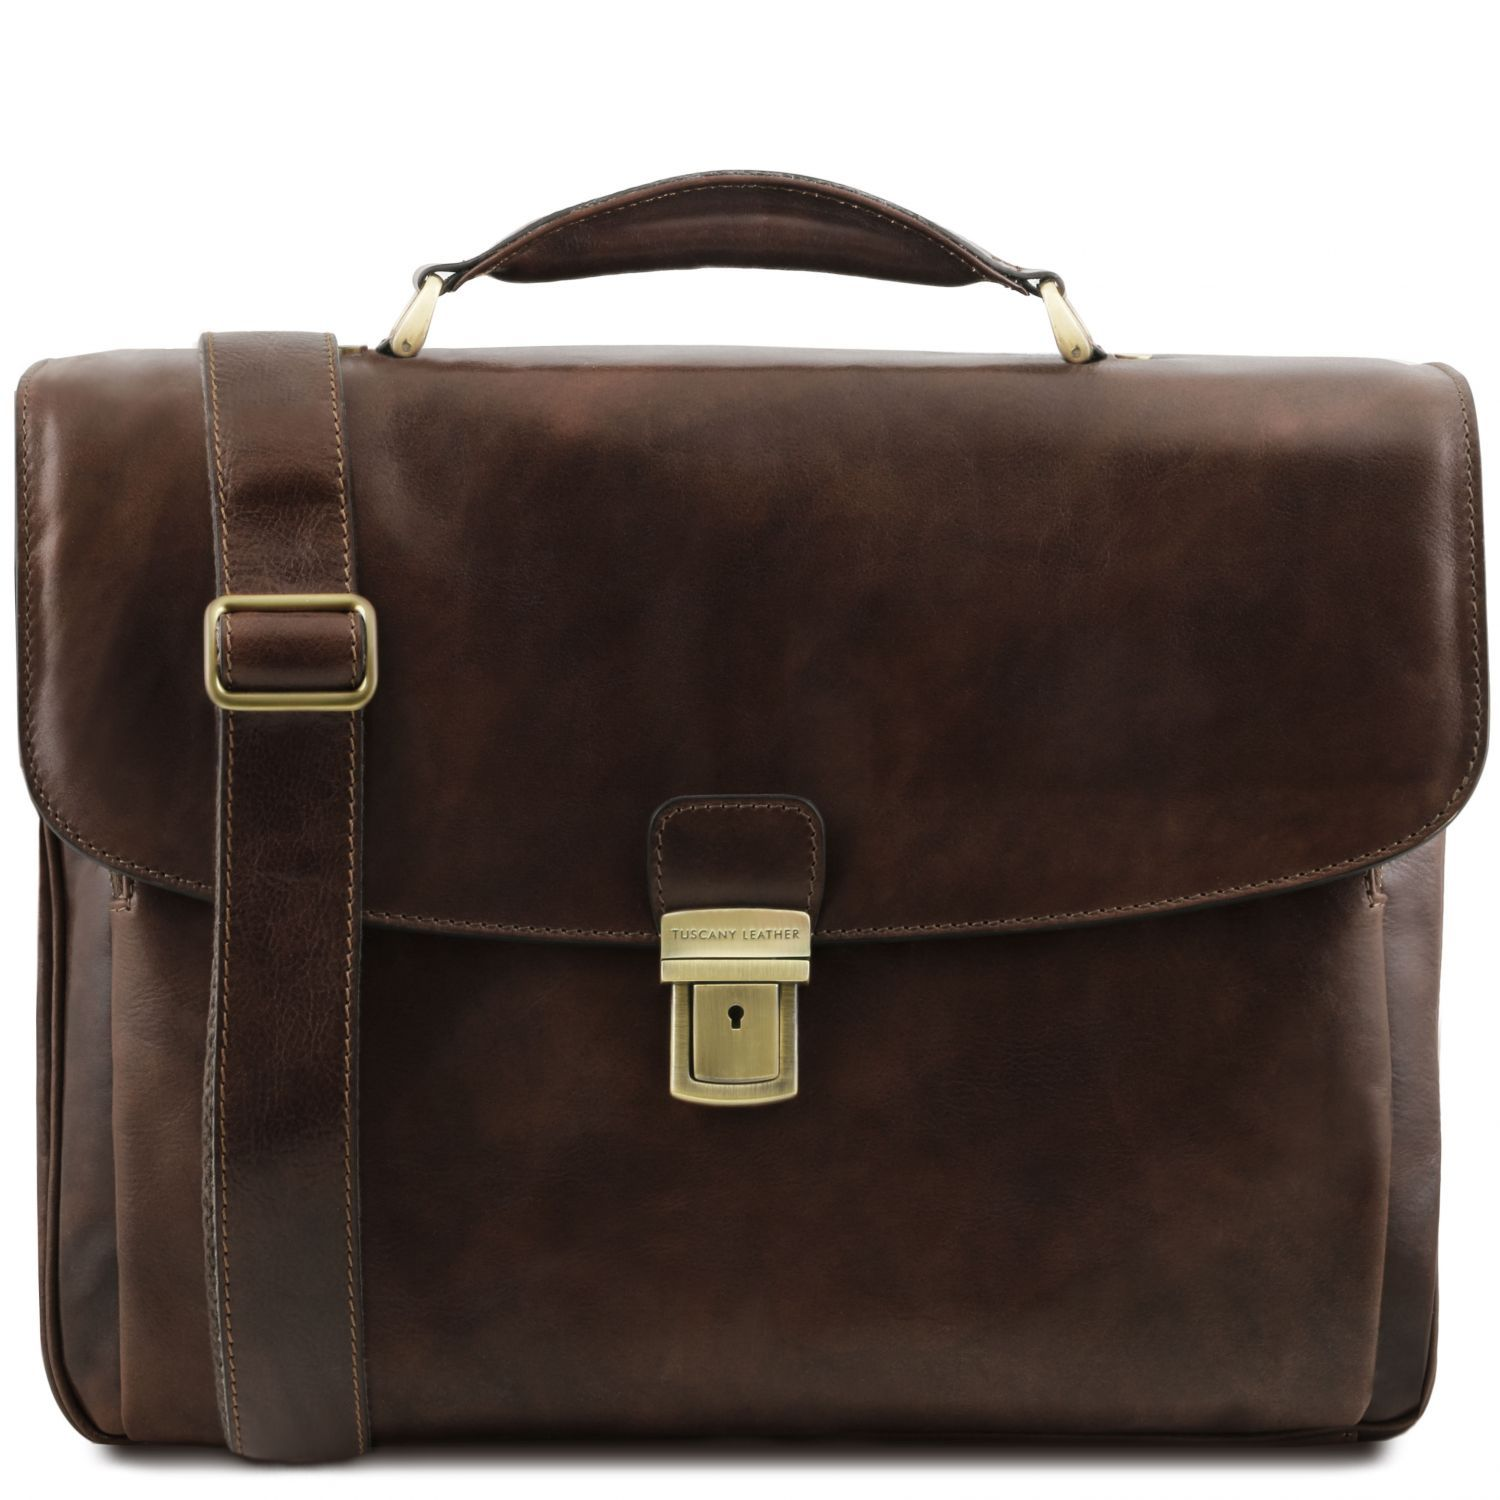 Alessandria - Leather multi compartment TL SMART laptop briefcase (TL141448) - Leather laptop bags | DILUSSOBAGS